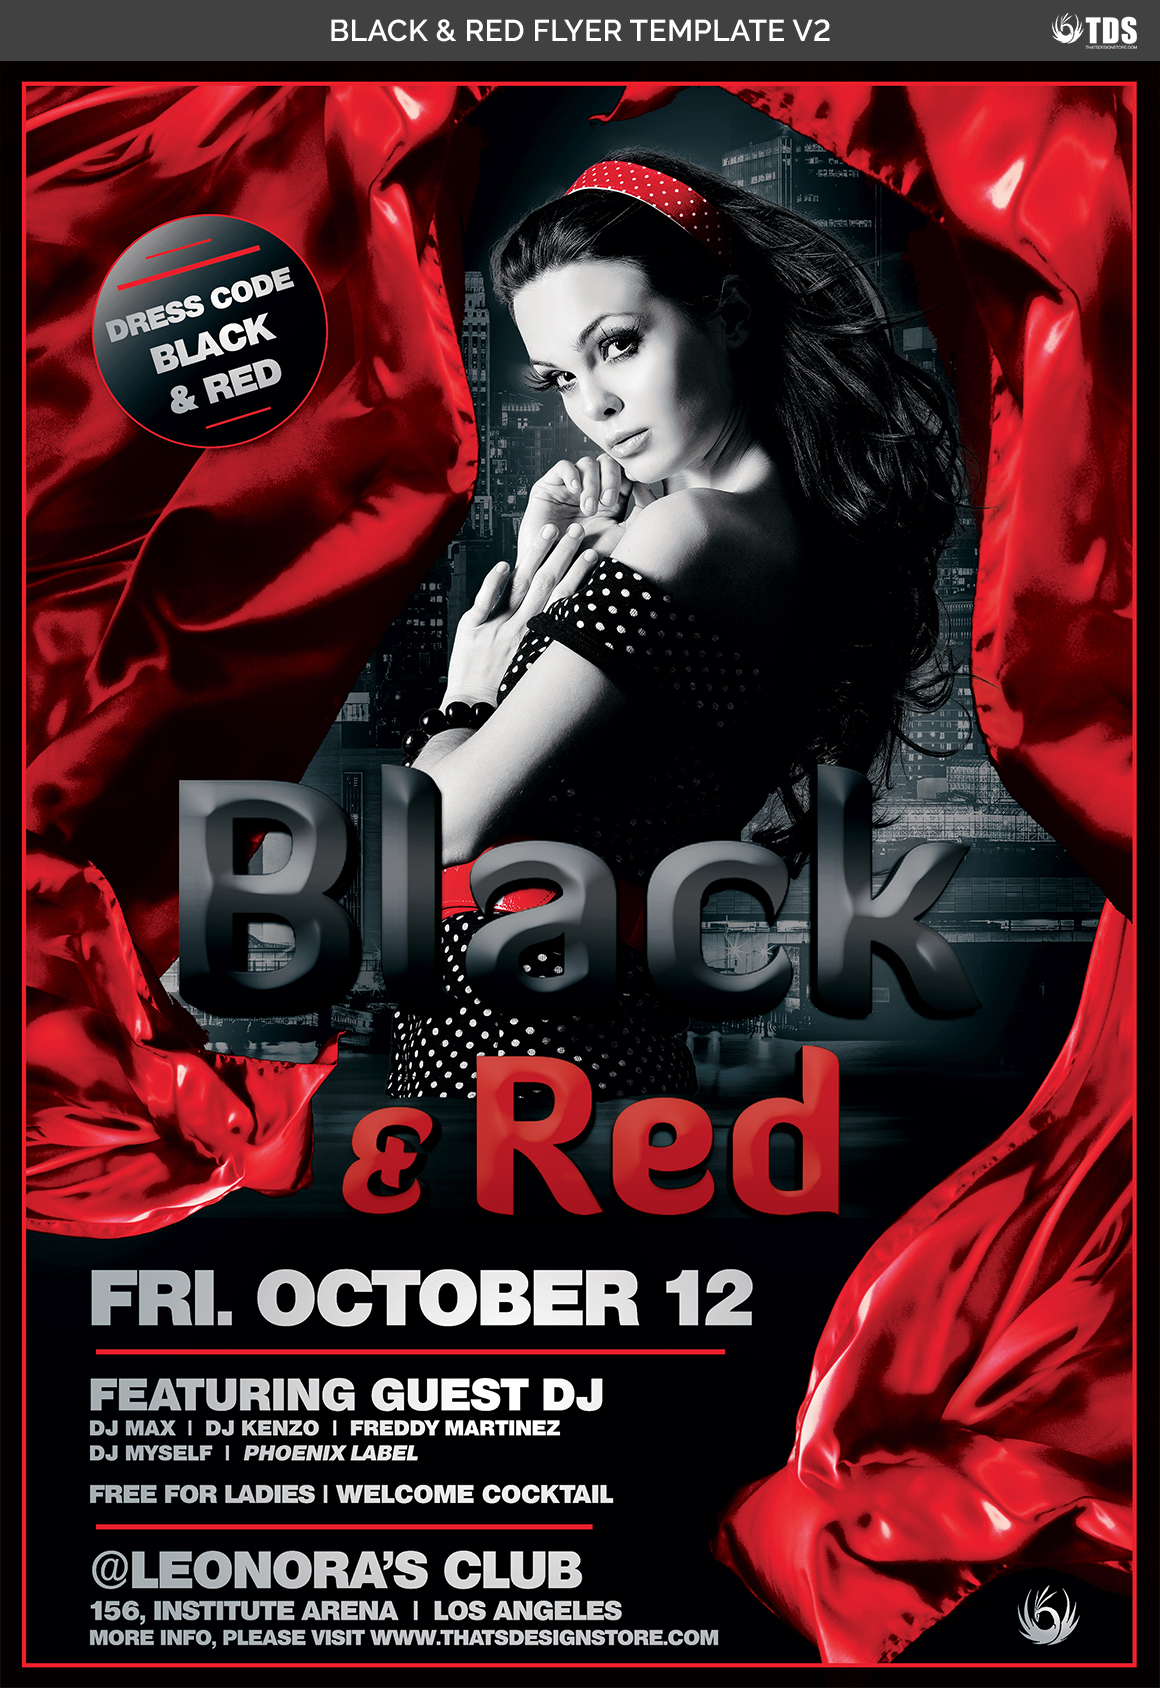 Black and Red Flyer Template V2 example image 4